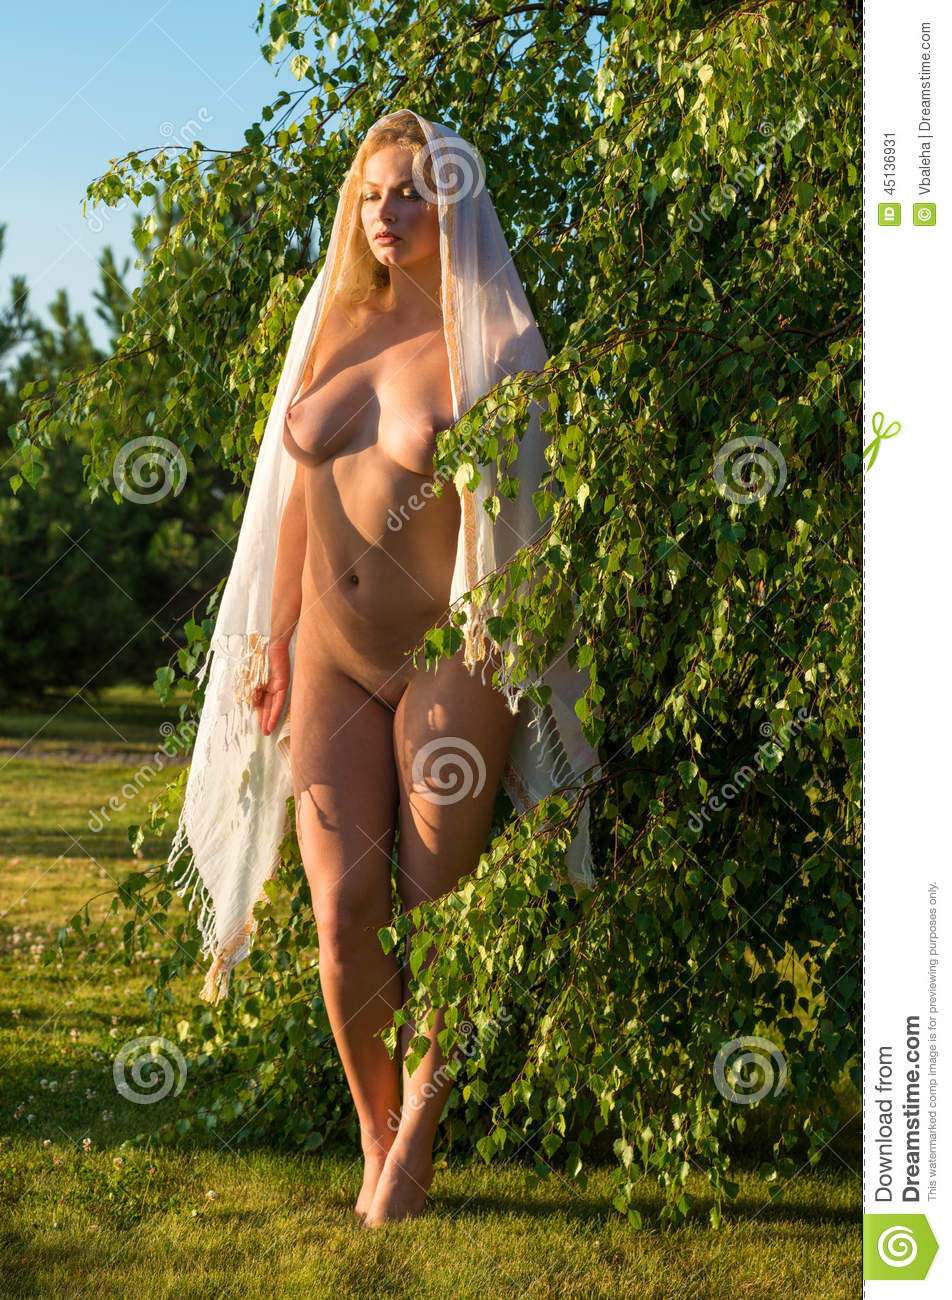 outdoor nude luyoung Beautiful young nude woman posing outdoor